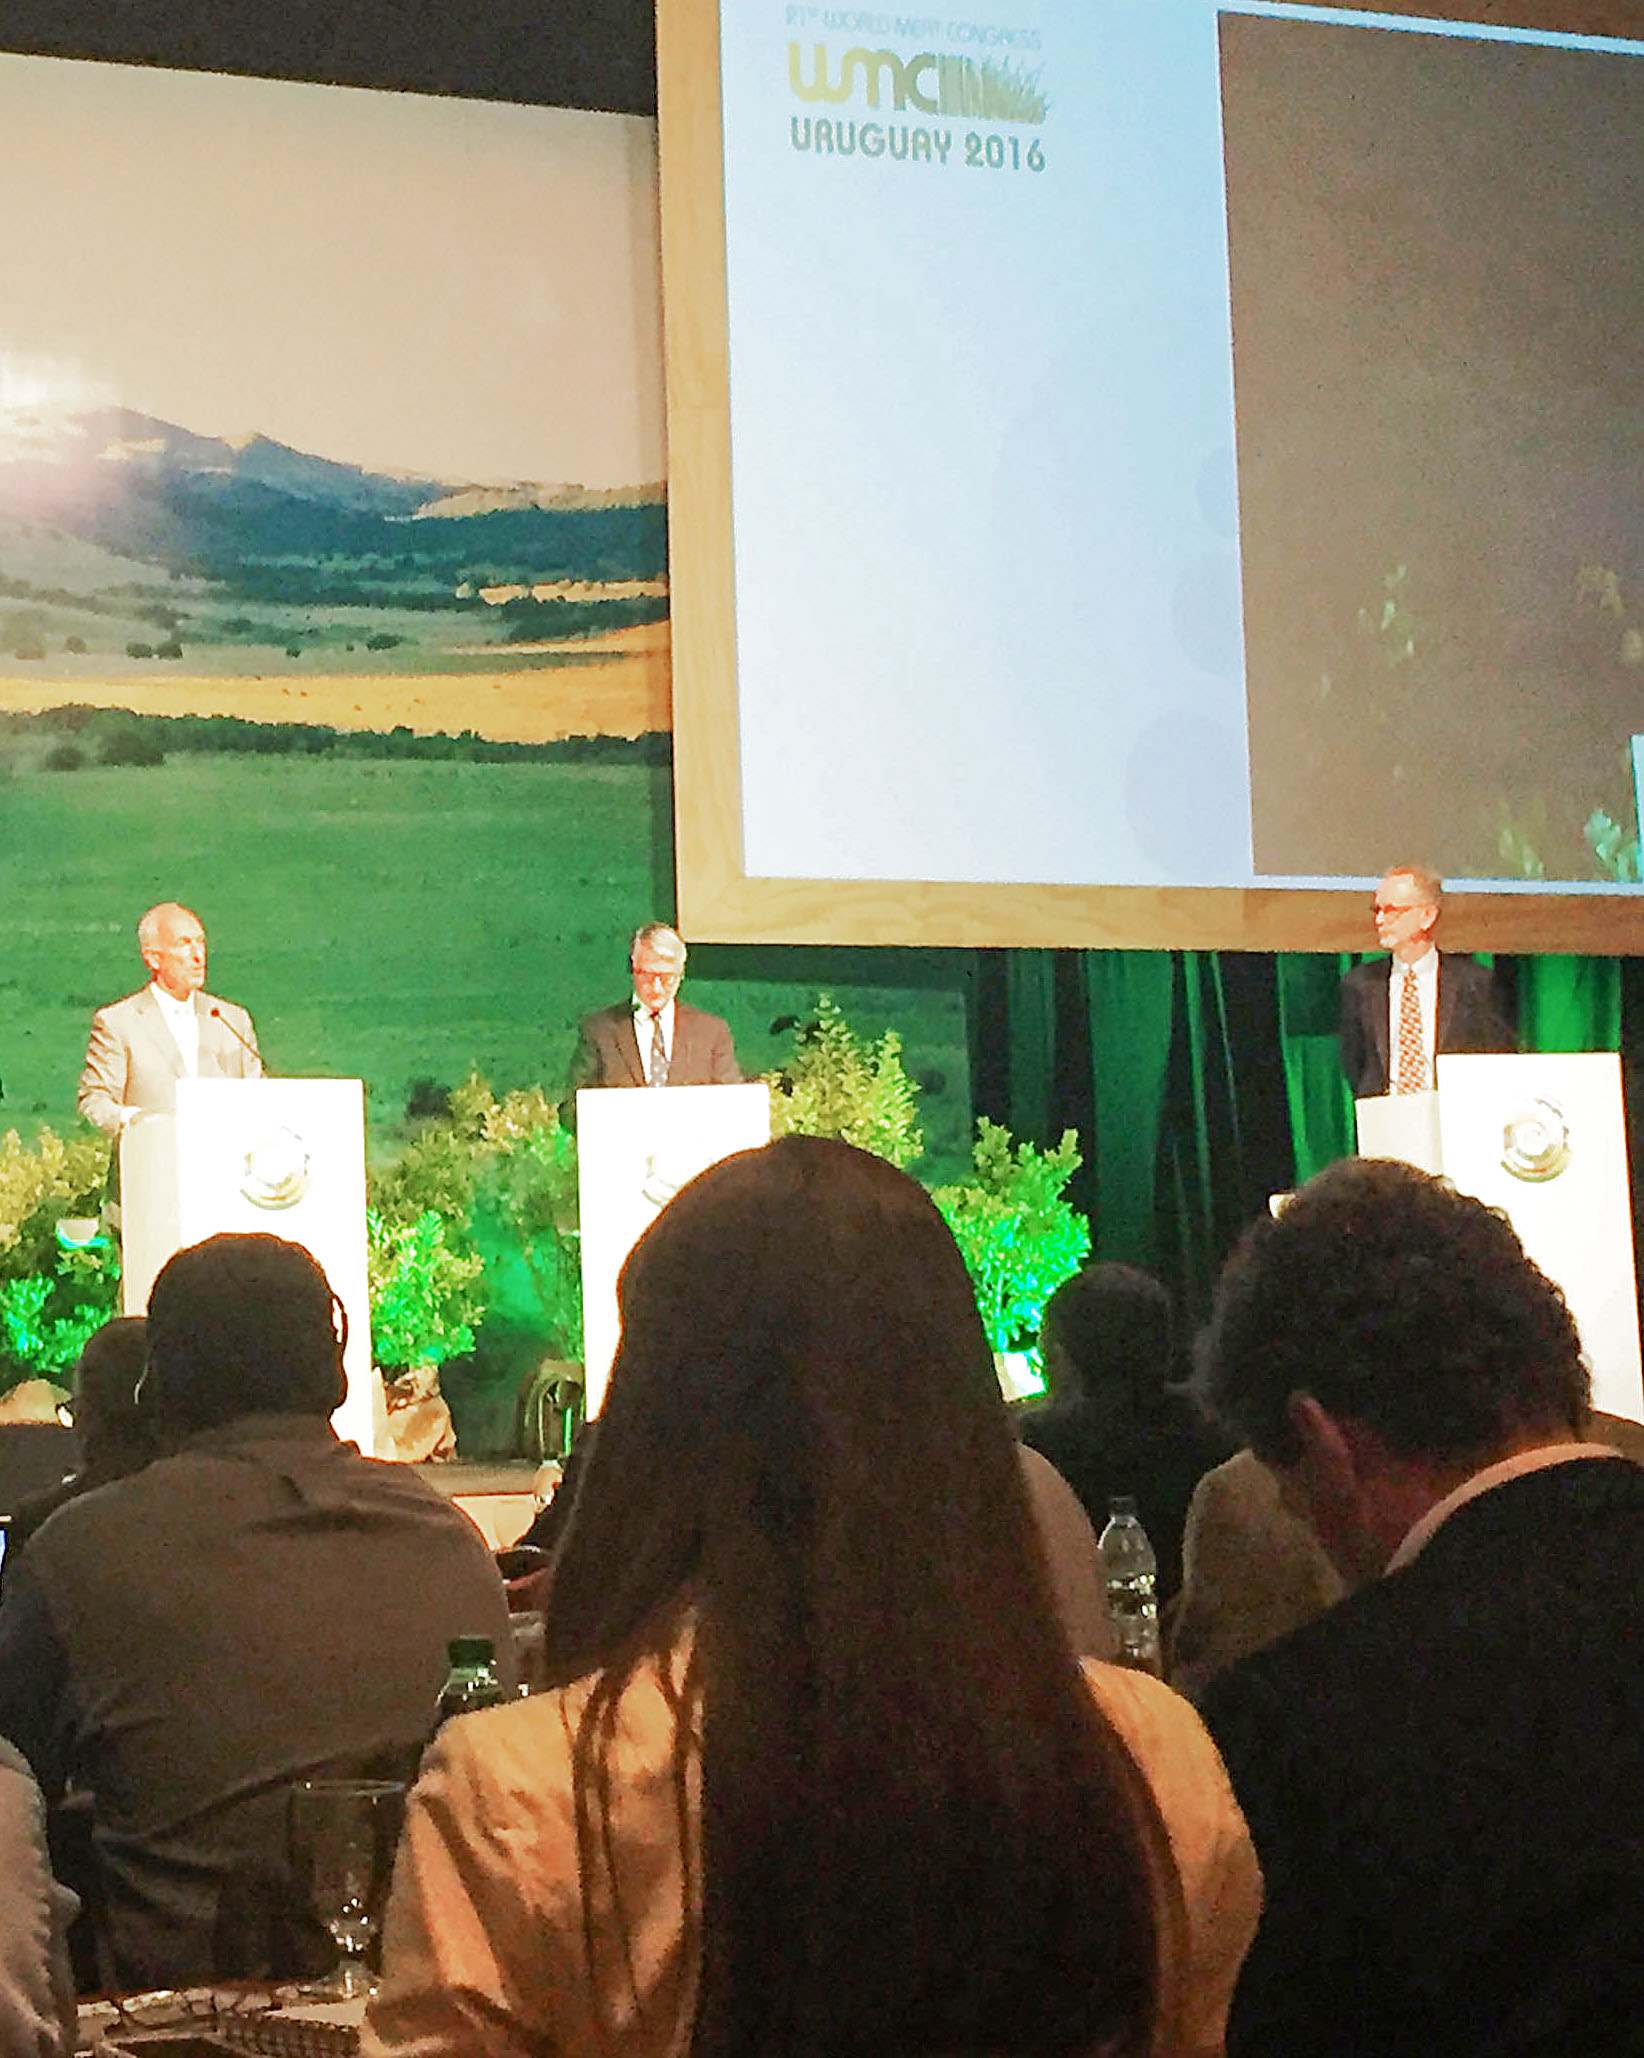 USMEF President and CEO Philip Seng, left, addresses the audience at World Meat Congress 2016 in Uruguay